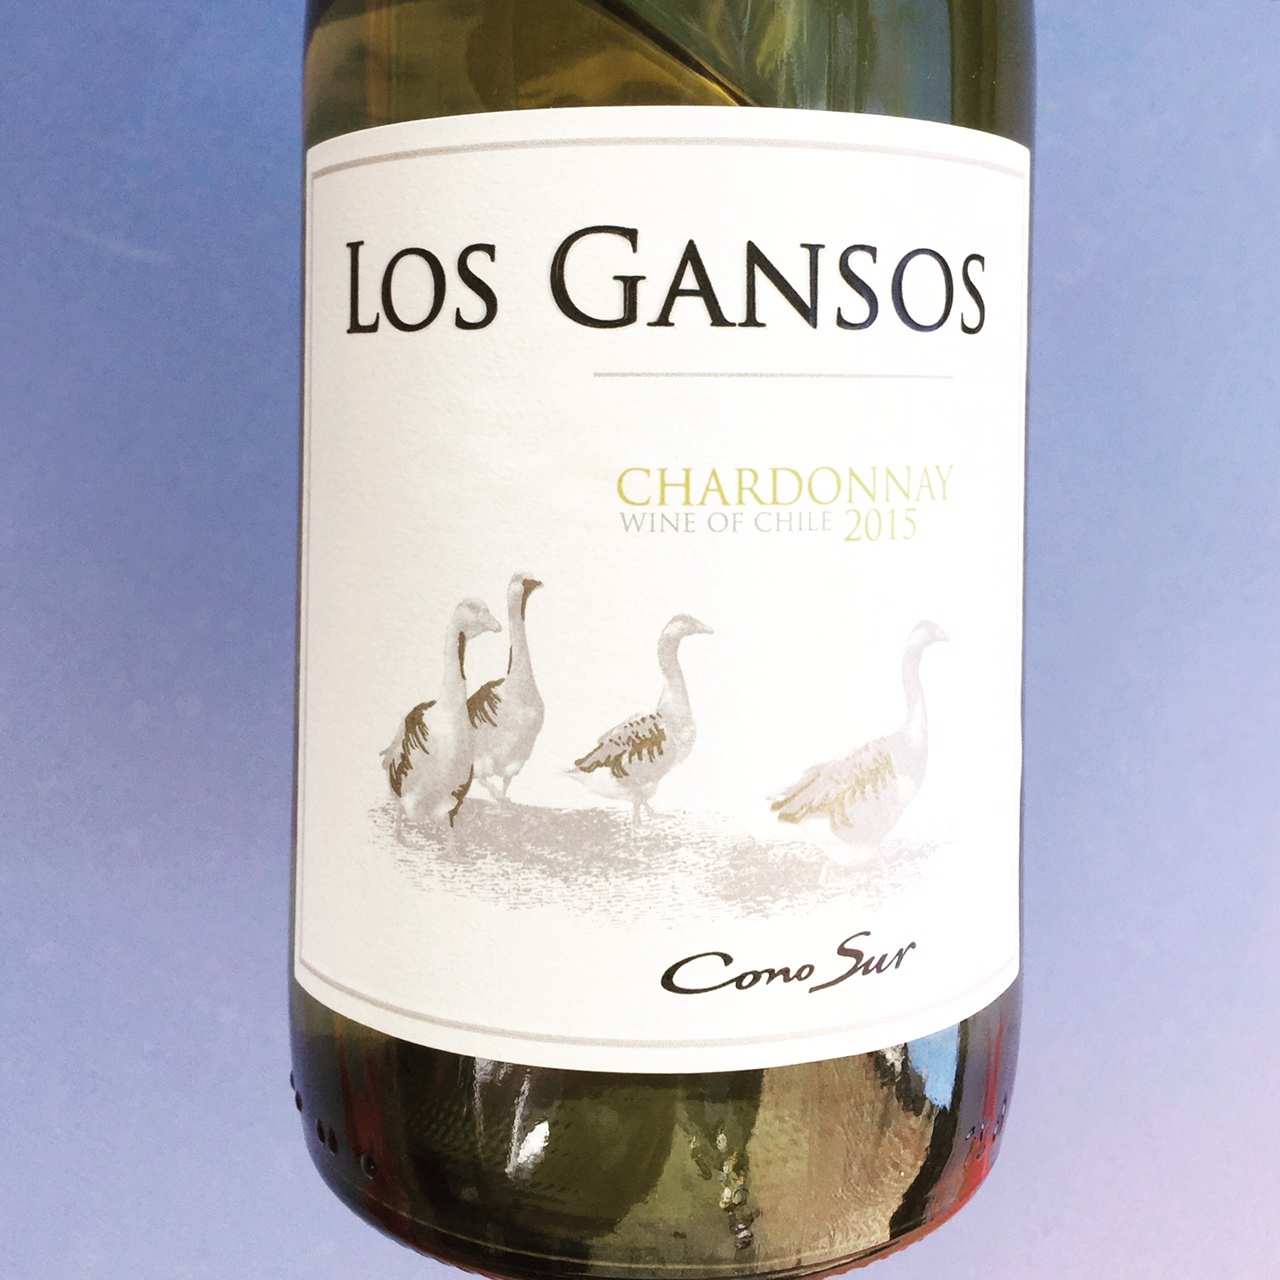 Chardonnay Los Gansos, Chili Review